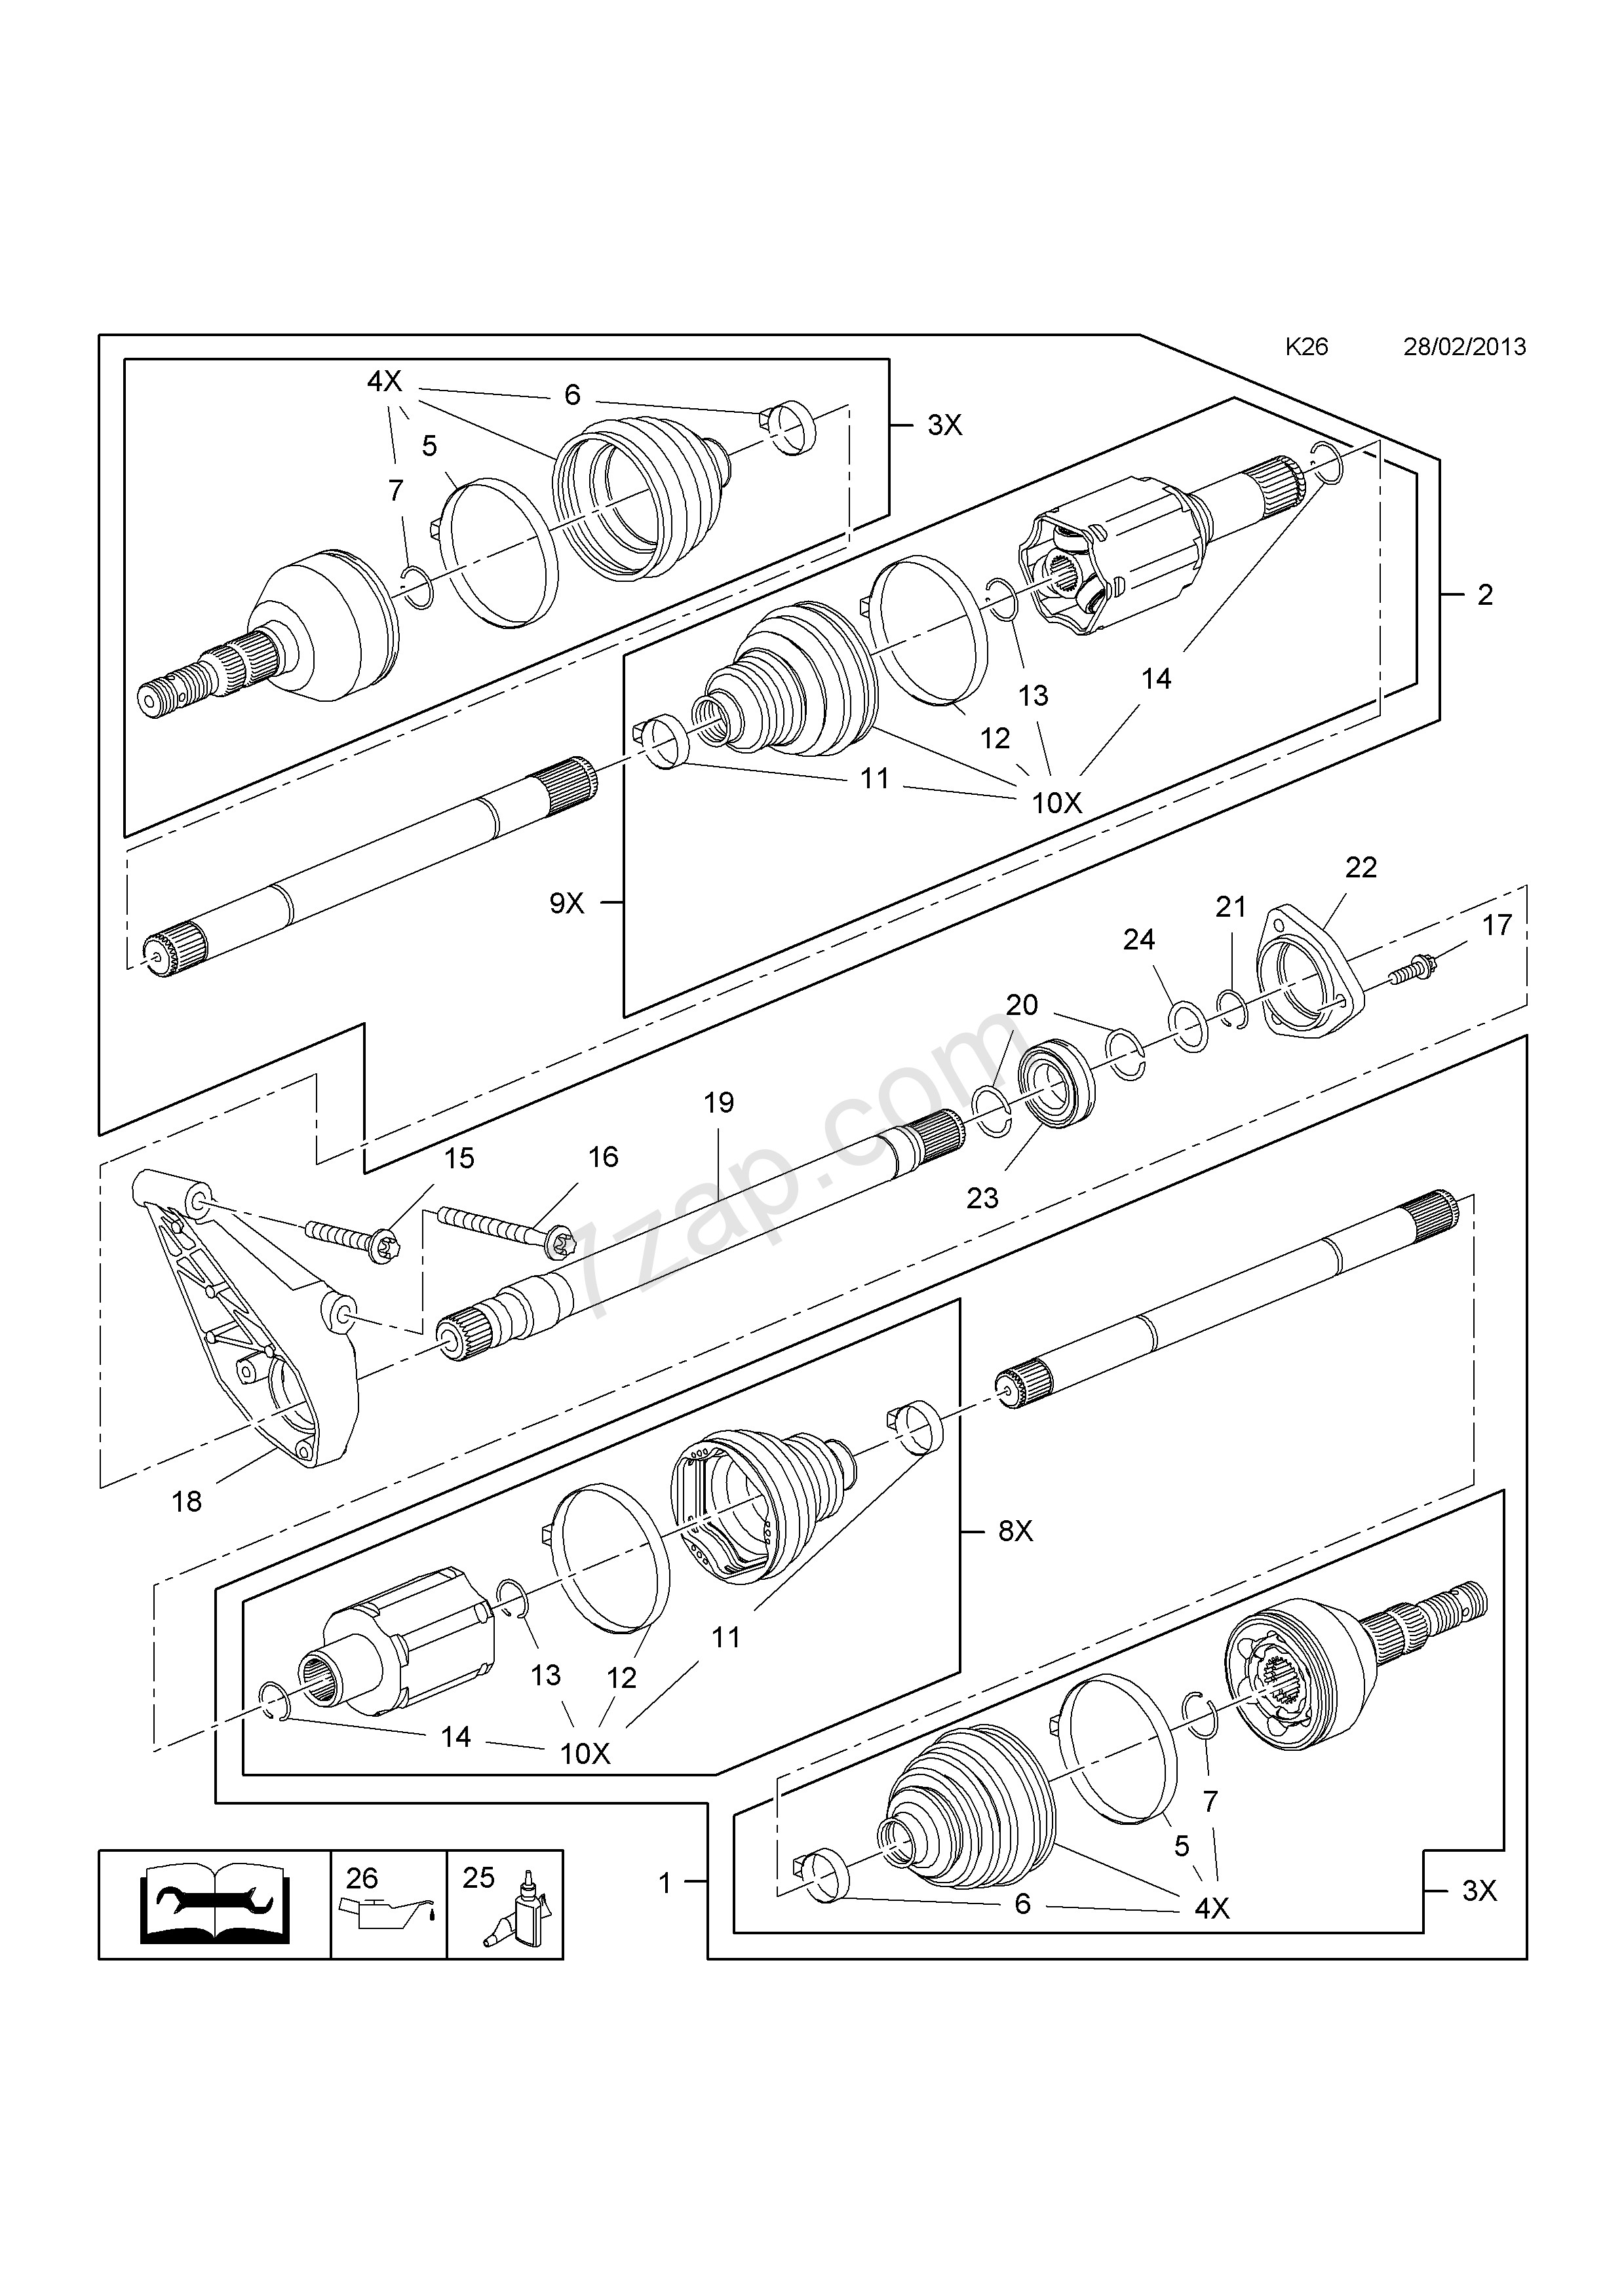 Car Front Axle Diagram Front Axle Drive Shaft [b14nel[luh] B14net[luj] Petrol Engines Used Of Car Front Axle Diagram